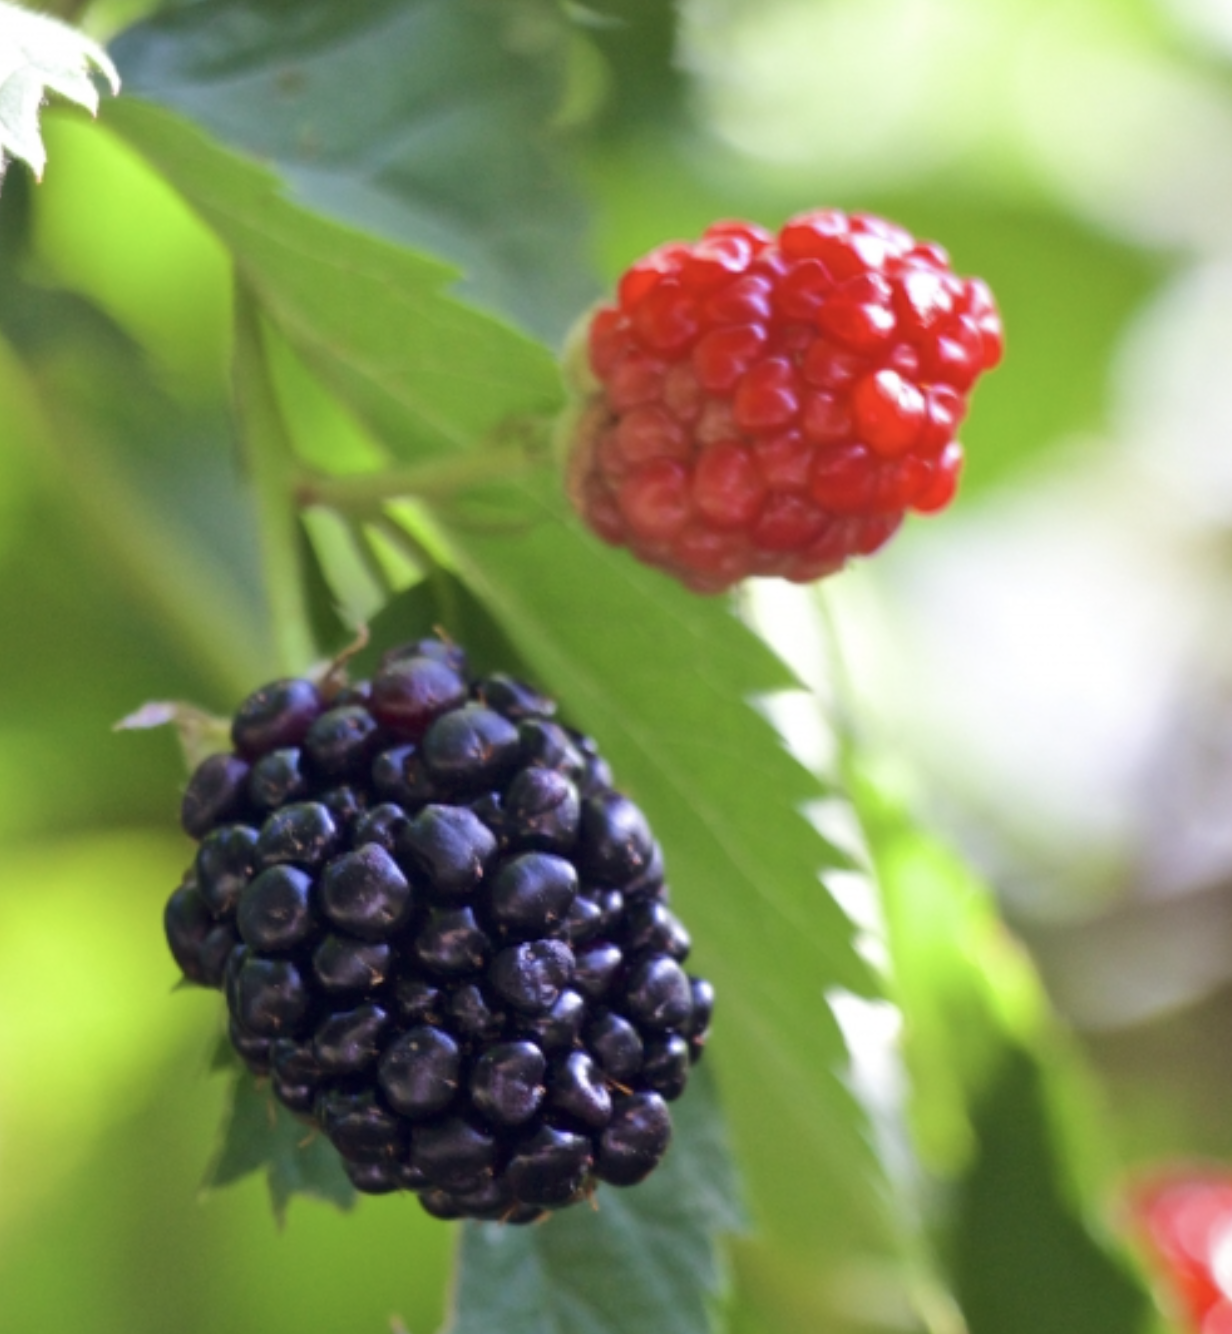 Learn to can jam - Have you ever been curious about canning? Making fruit or berry jam is the perfect place to start. Come to REC Retreats and participate in a hands-on